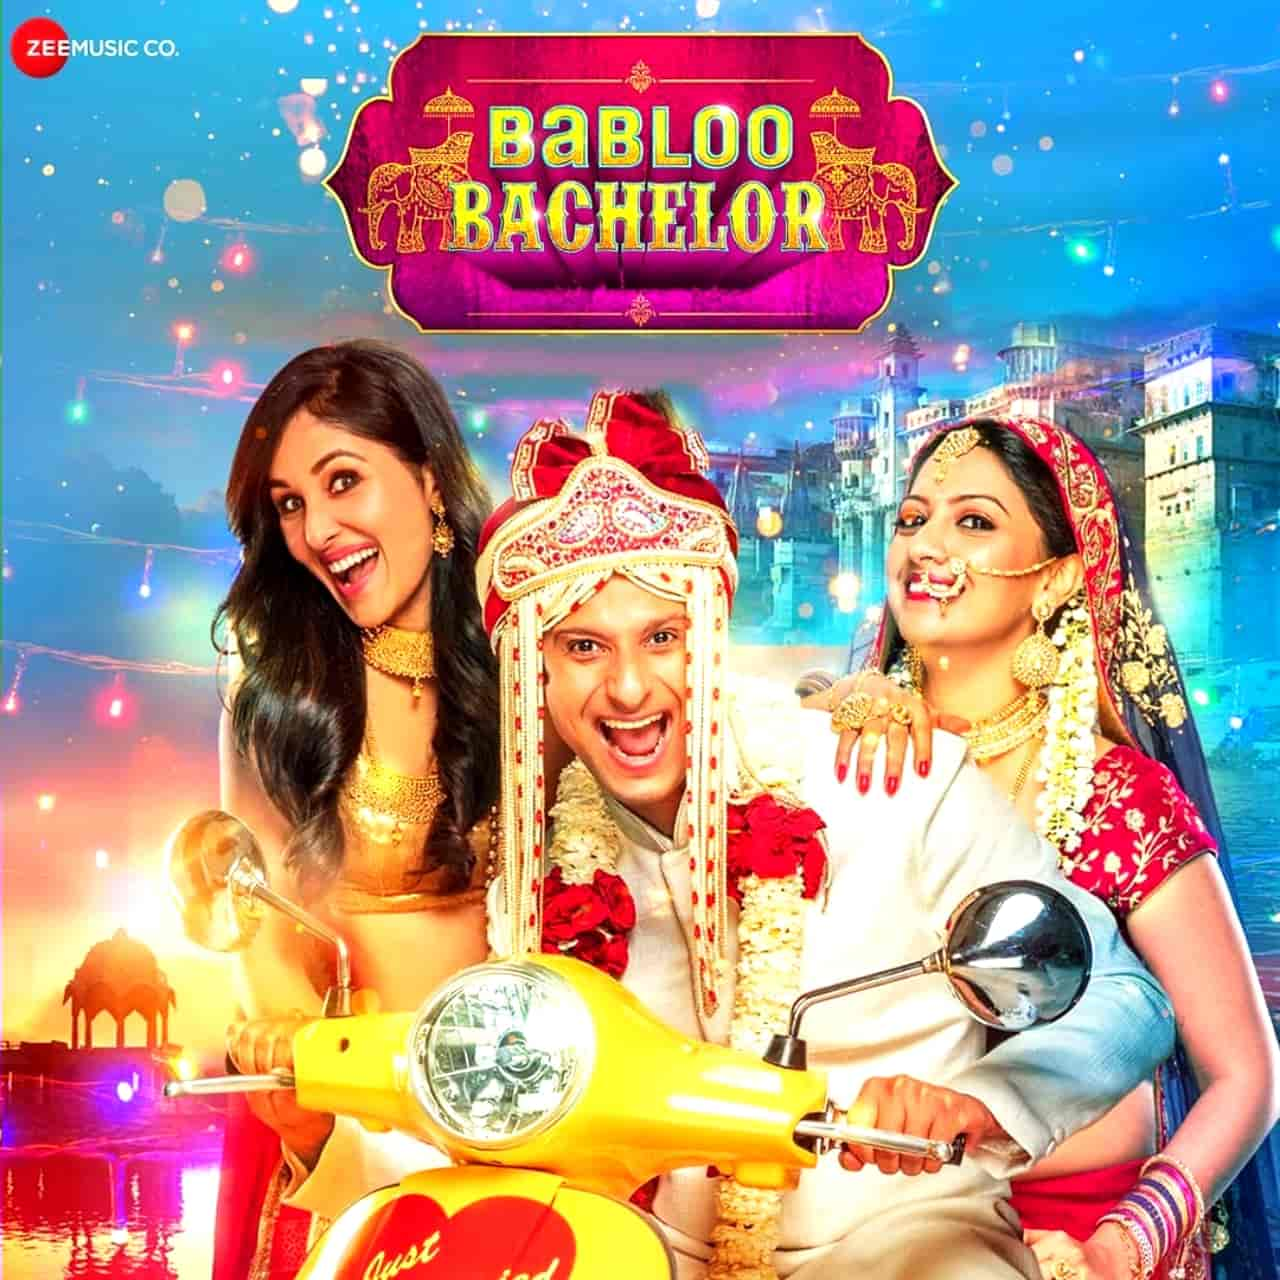 Kasam Lyrics :- Arijit Singh given his melodious voice in a very beautiful song Kasam from Sharman Joshi starrer movie Babloo Bachelor. Music of this song given by Jeet Gannguli and produced by Aditya Dev while this beautiful song Kasam lyrics has penned by Rashmi Virag. This song is presented by Zee Music Company label.